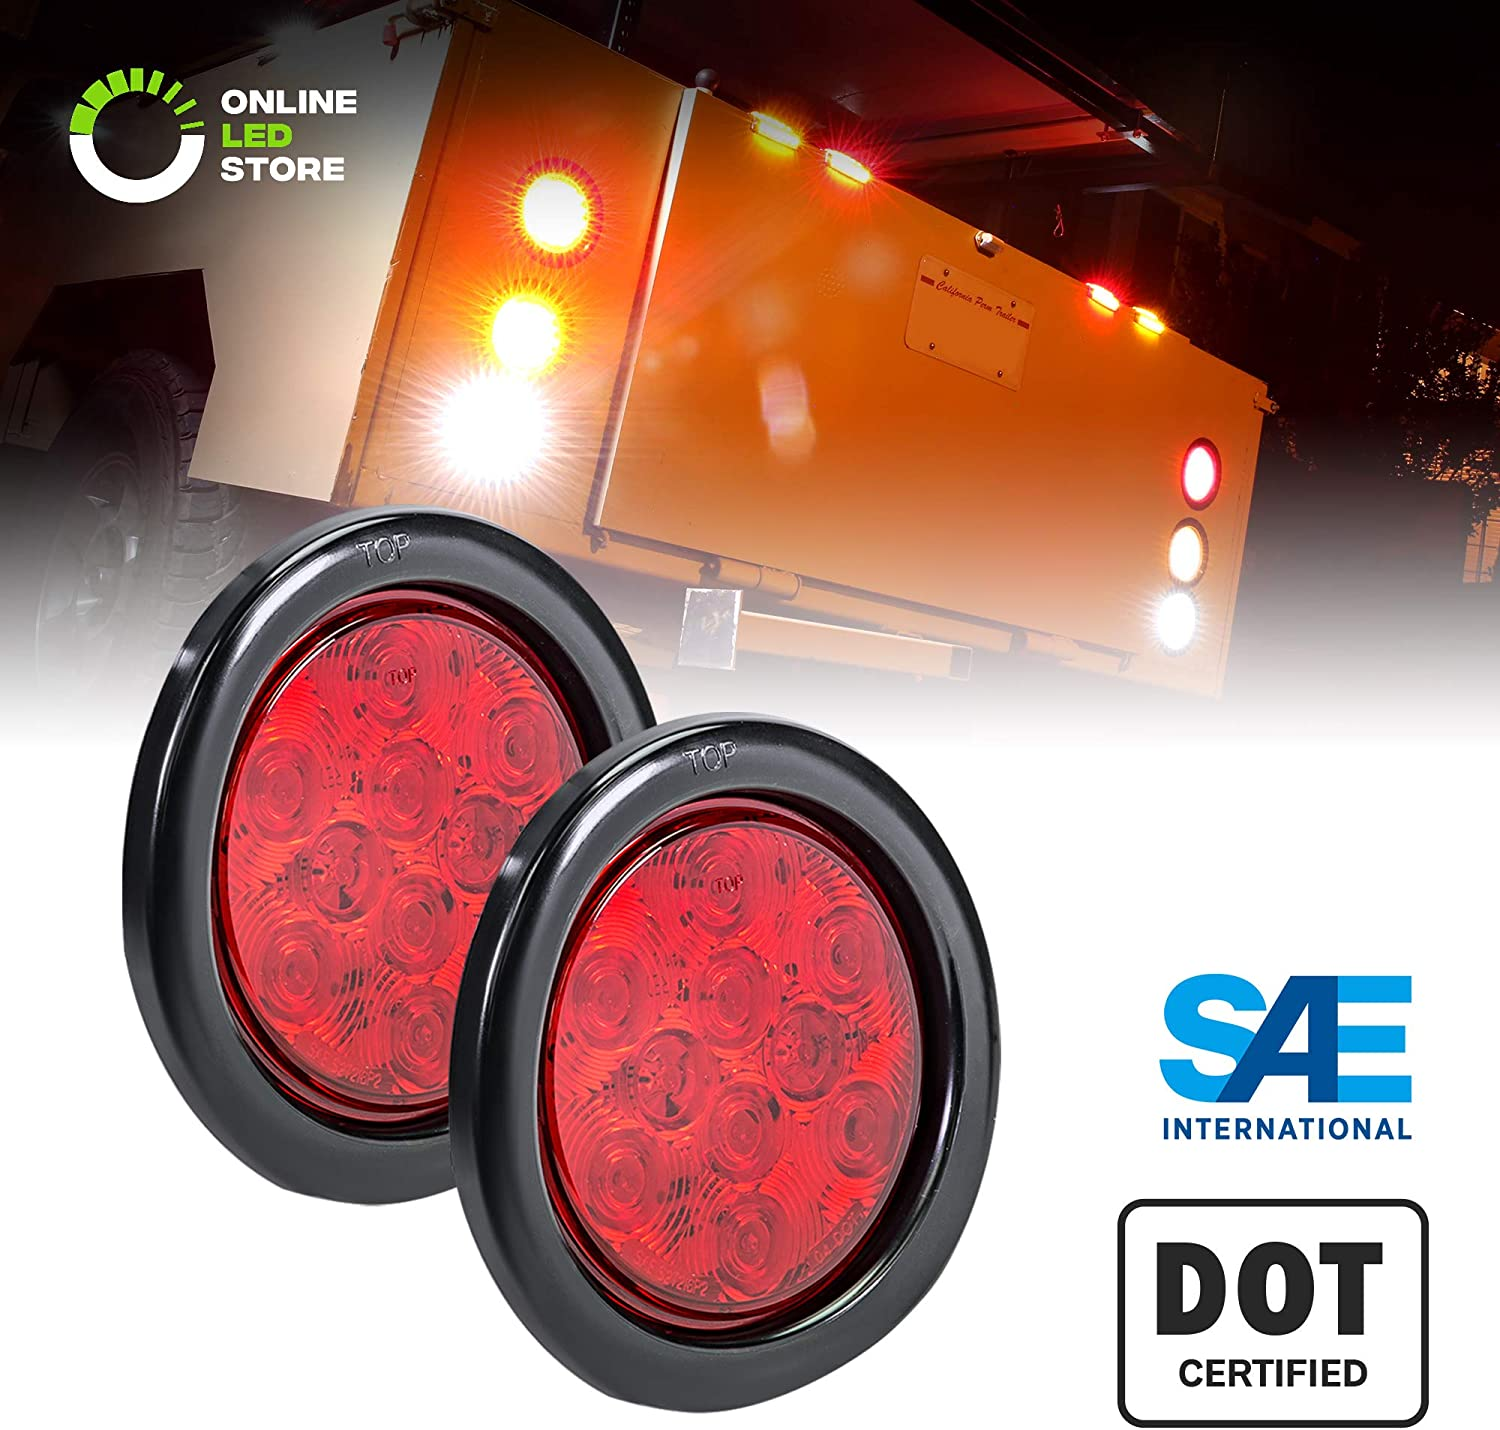 Lamin-x T554Y Fog Light Covers